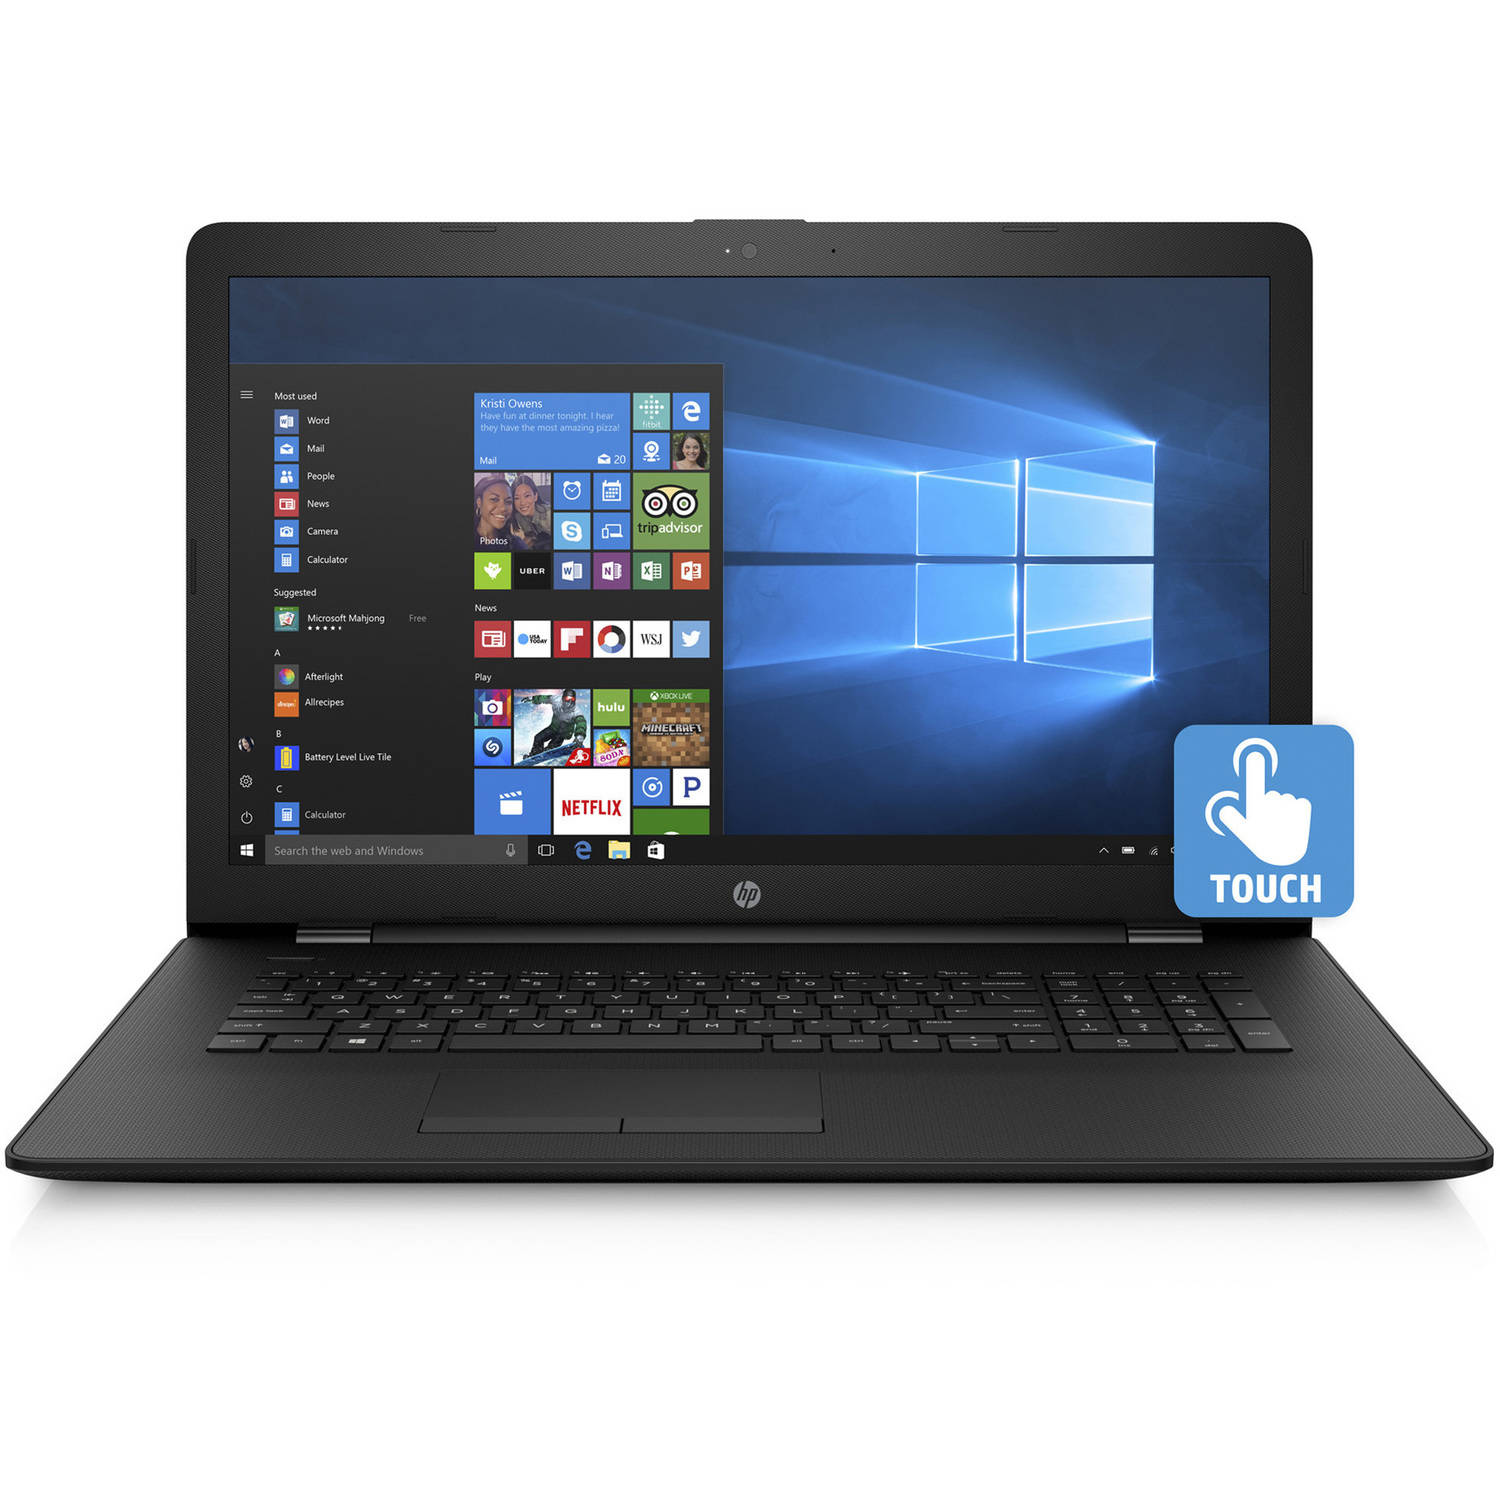 "HP 17-Bs020Nr 17.3"" Laptop, Touchscreen, Windows 10 Home, Intel Core i3-6006U Dual-Core Processor, 8GB RAM, 1TB Hard Drive"